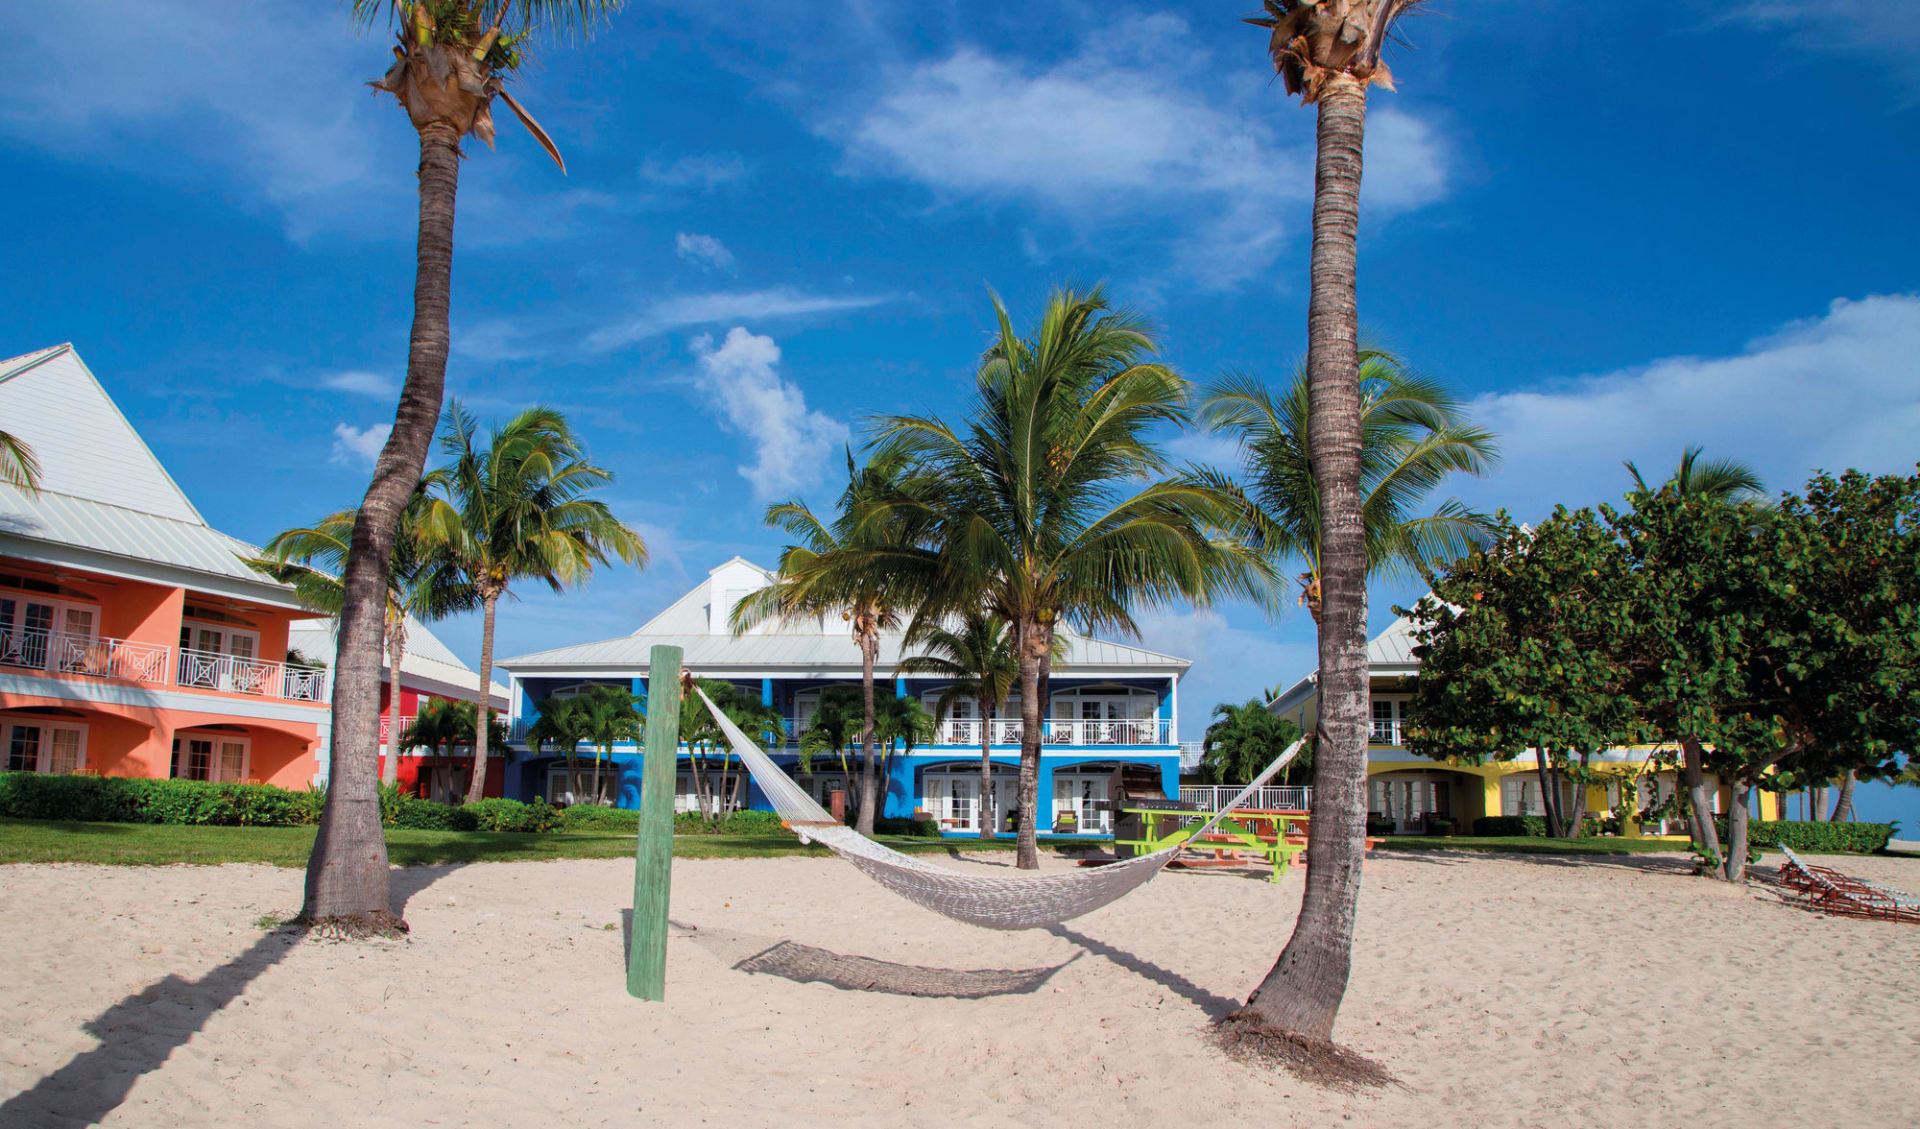 Old Bahama Bay in West End:  Old Bahama Bay - Buildings cMajestic